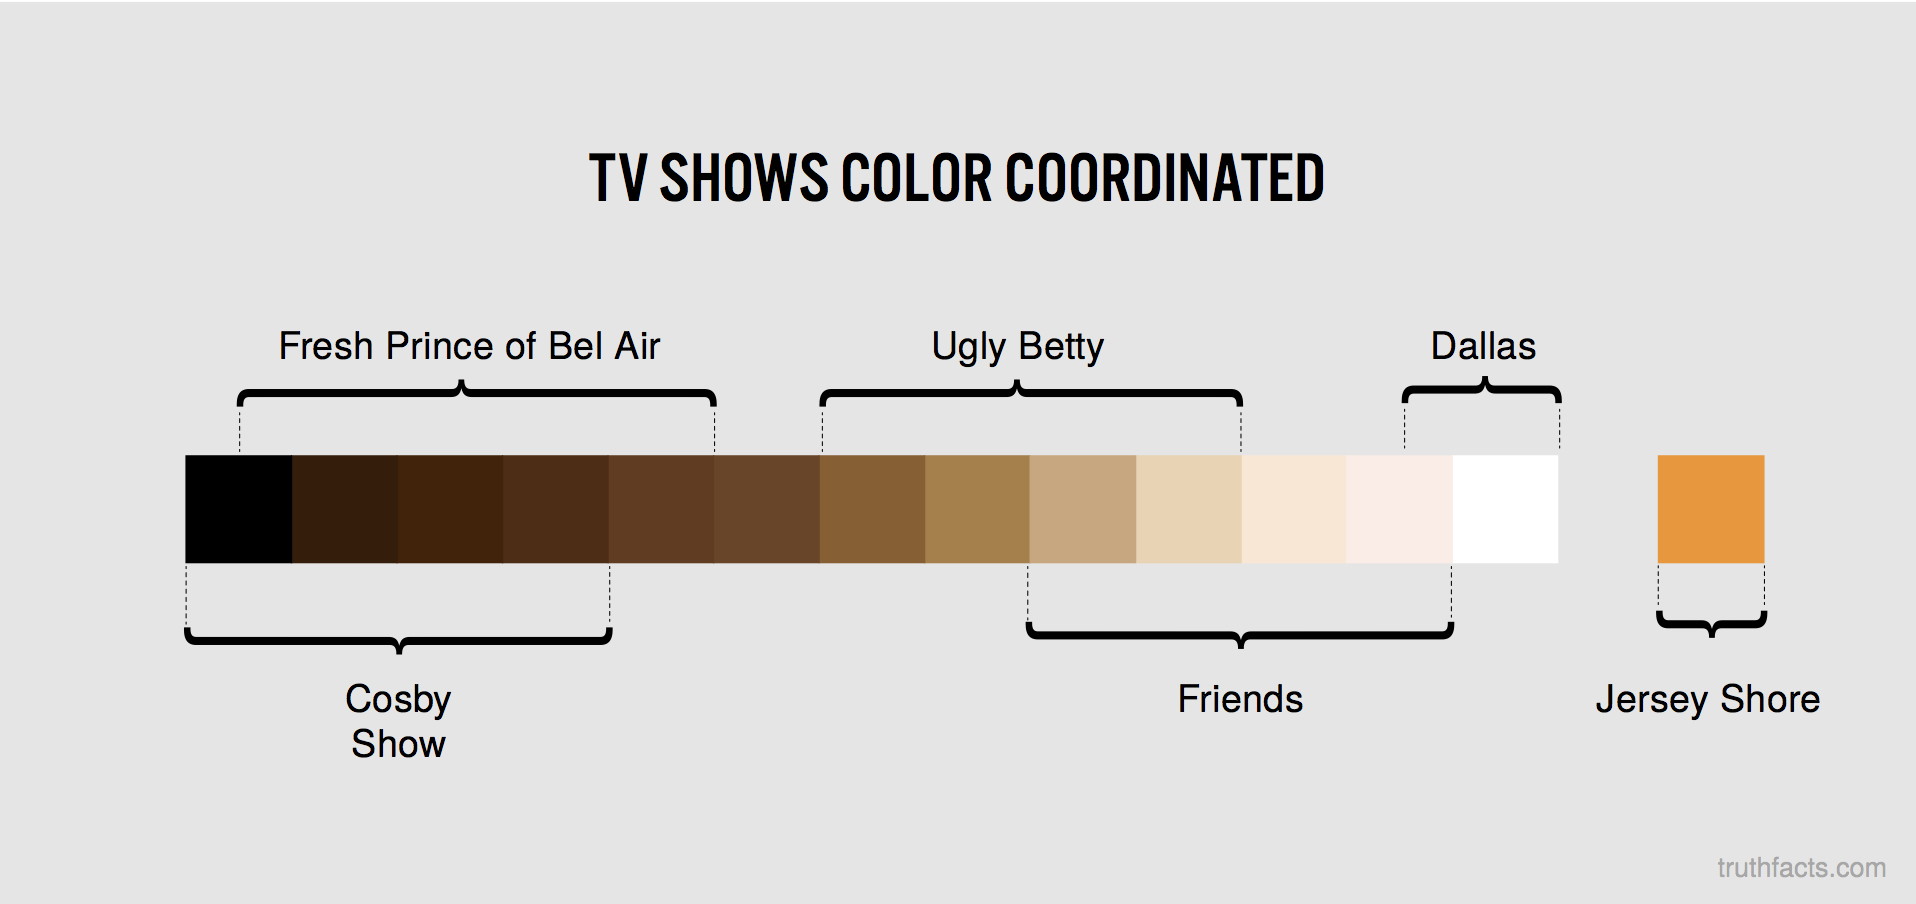 TV hows color coordinated